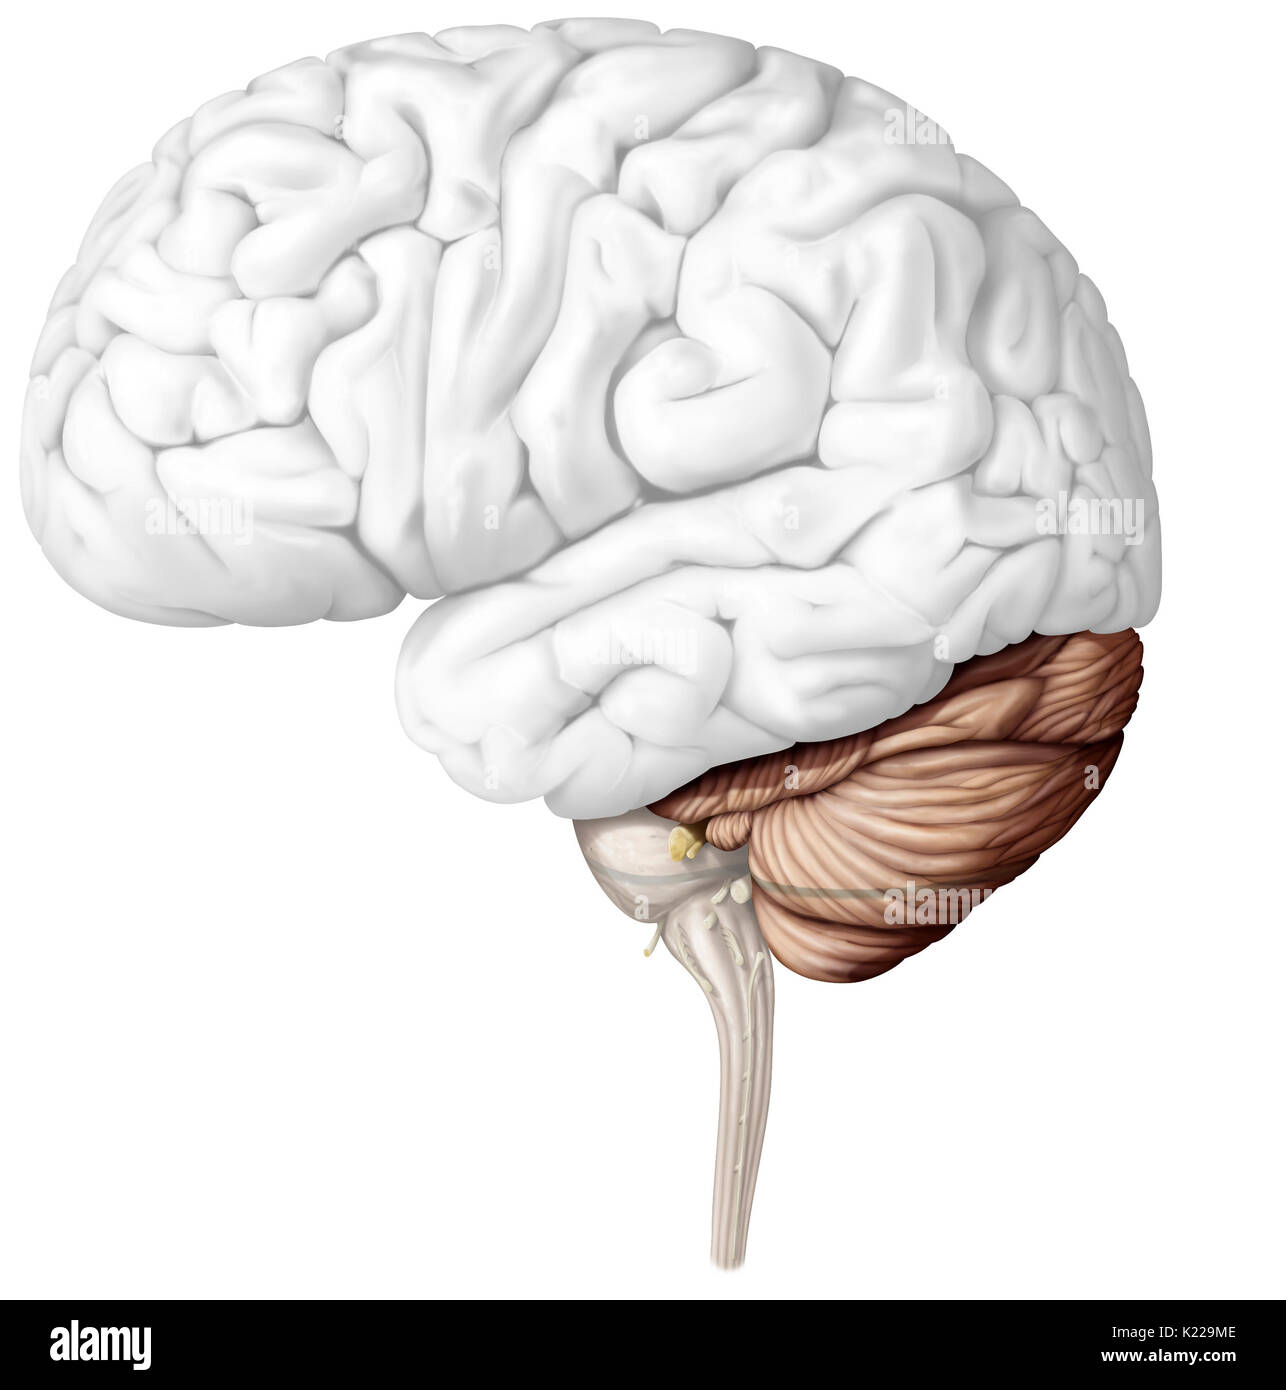 the cerebellum is the part of the brain located under the cerebrum